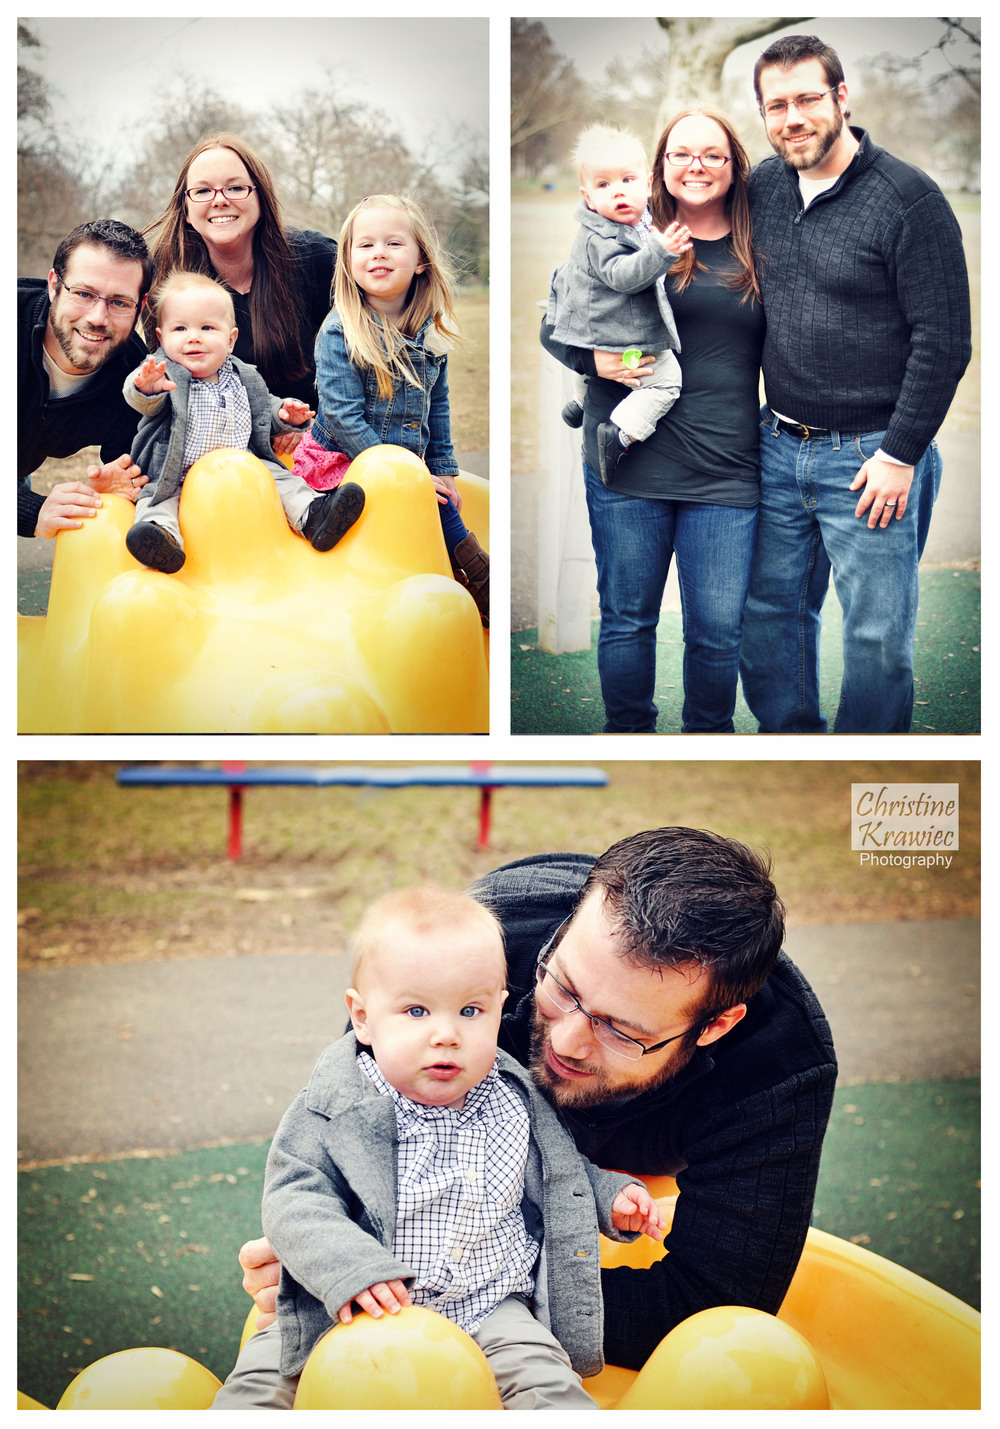 Christine KRawiec PHotography - South Jersey Family Photographer